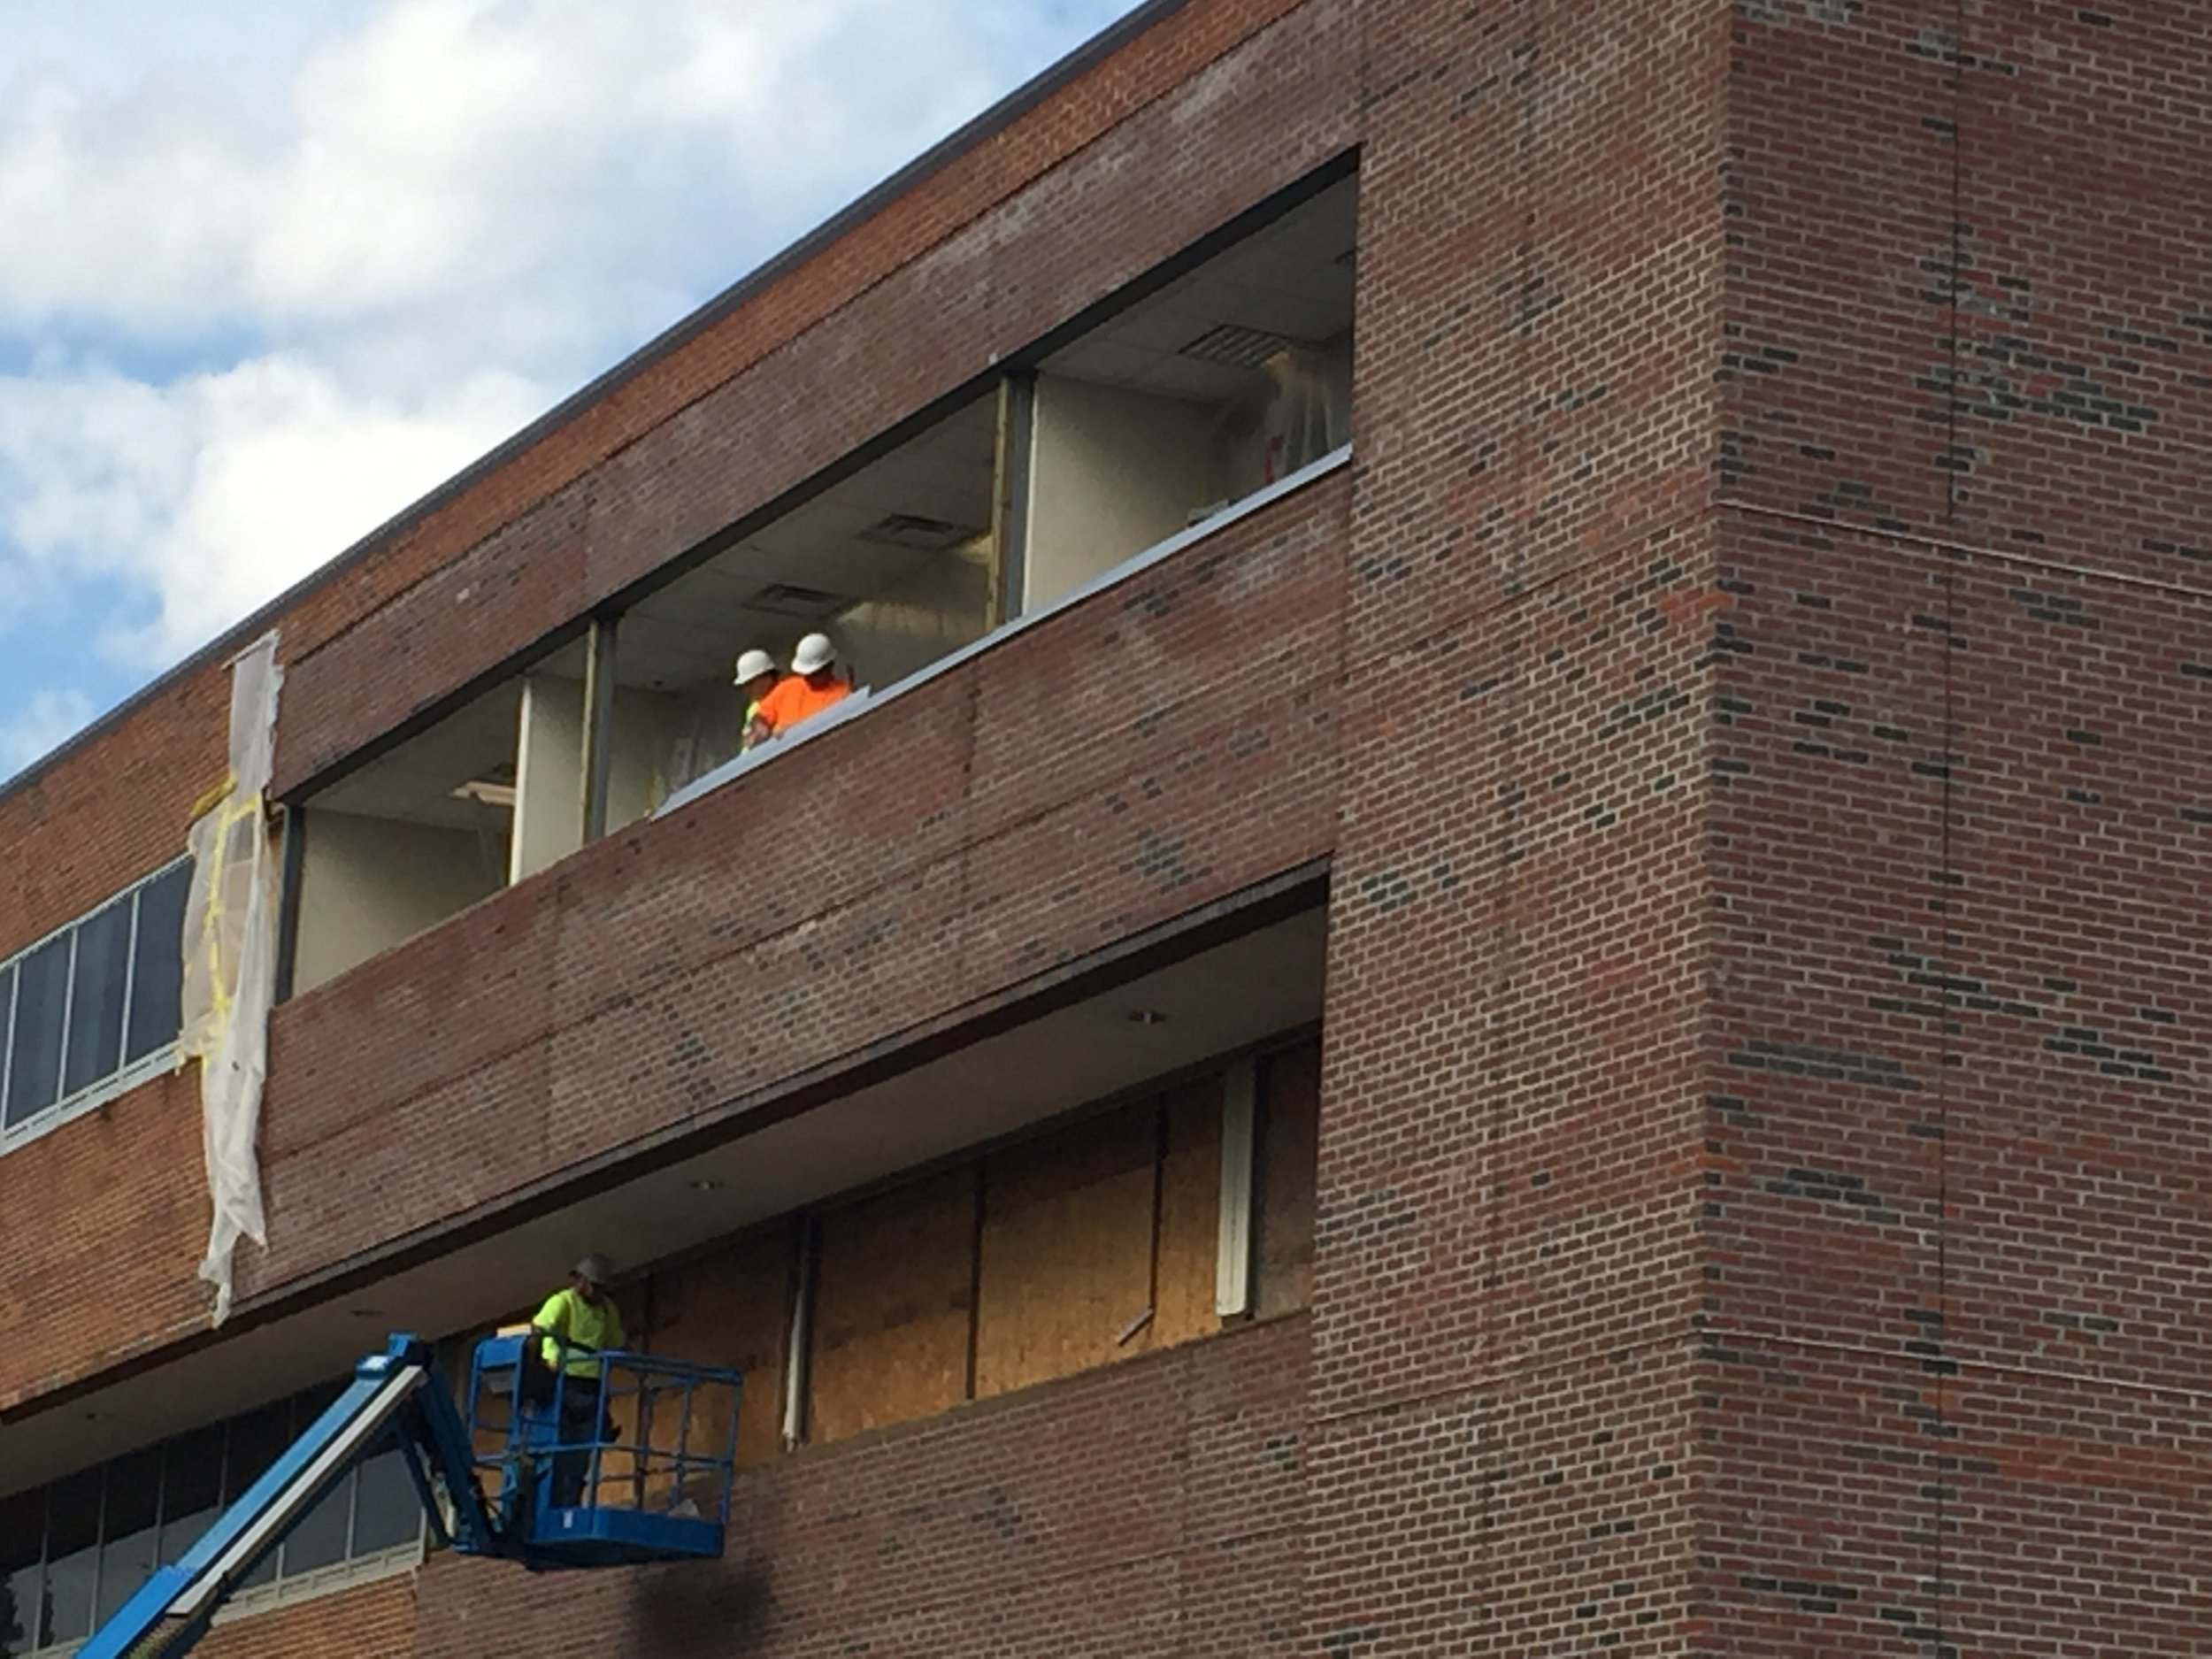 Staging for the installation of new windows. The new brick appears on the right.